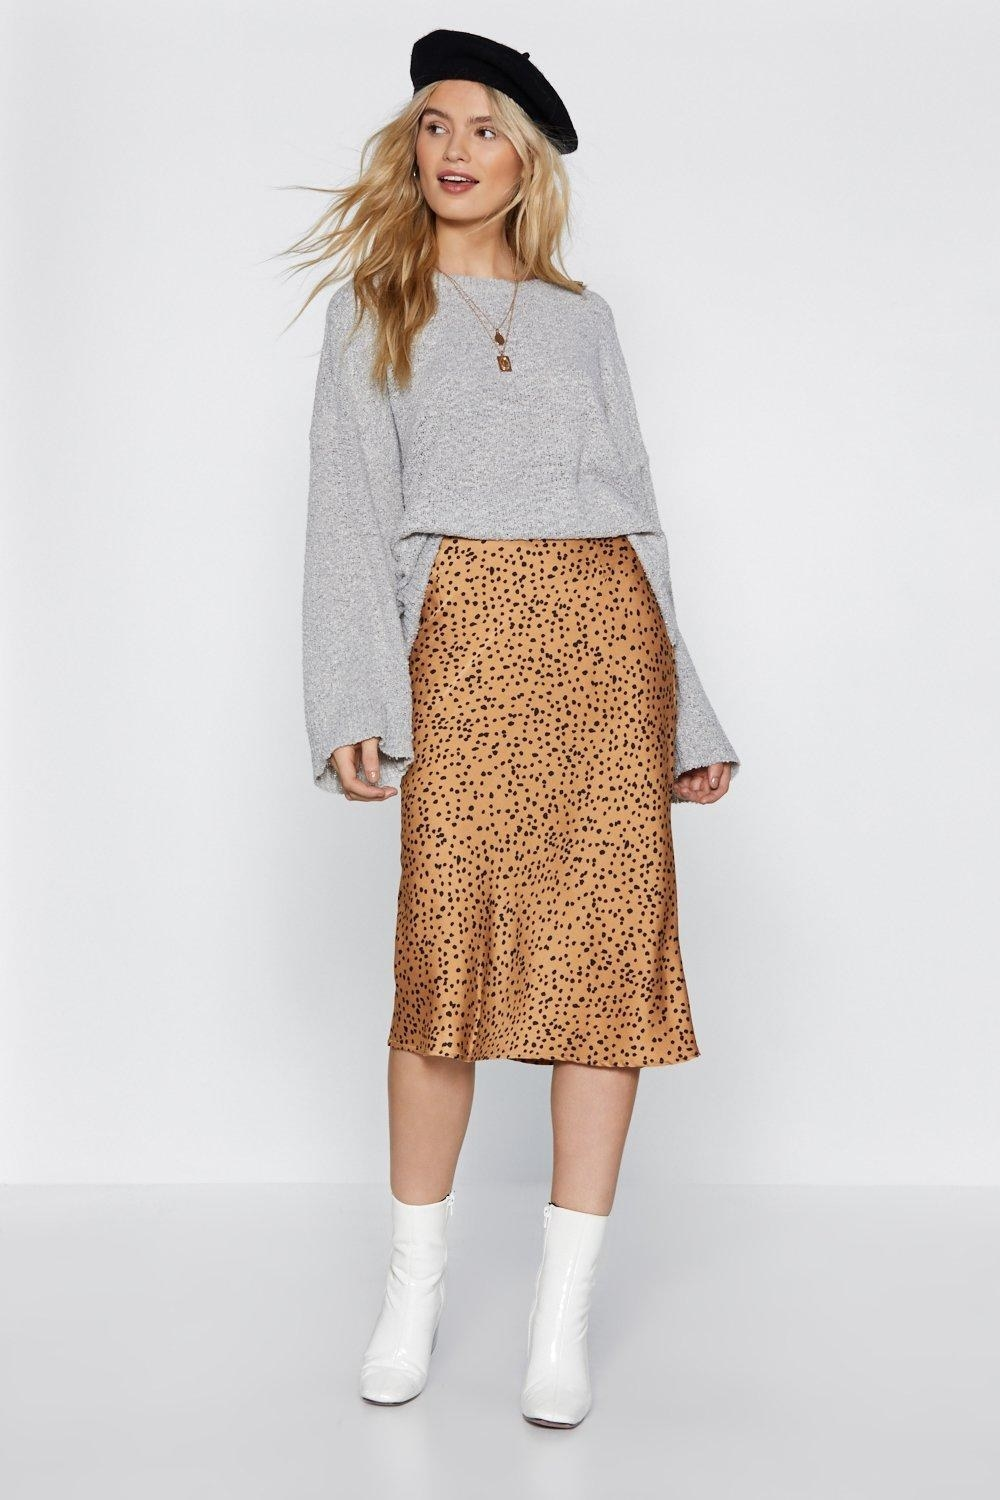 Model in the tan and black spotted skirt